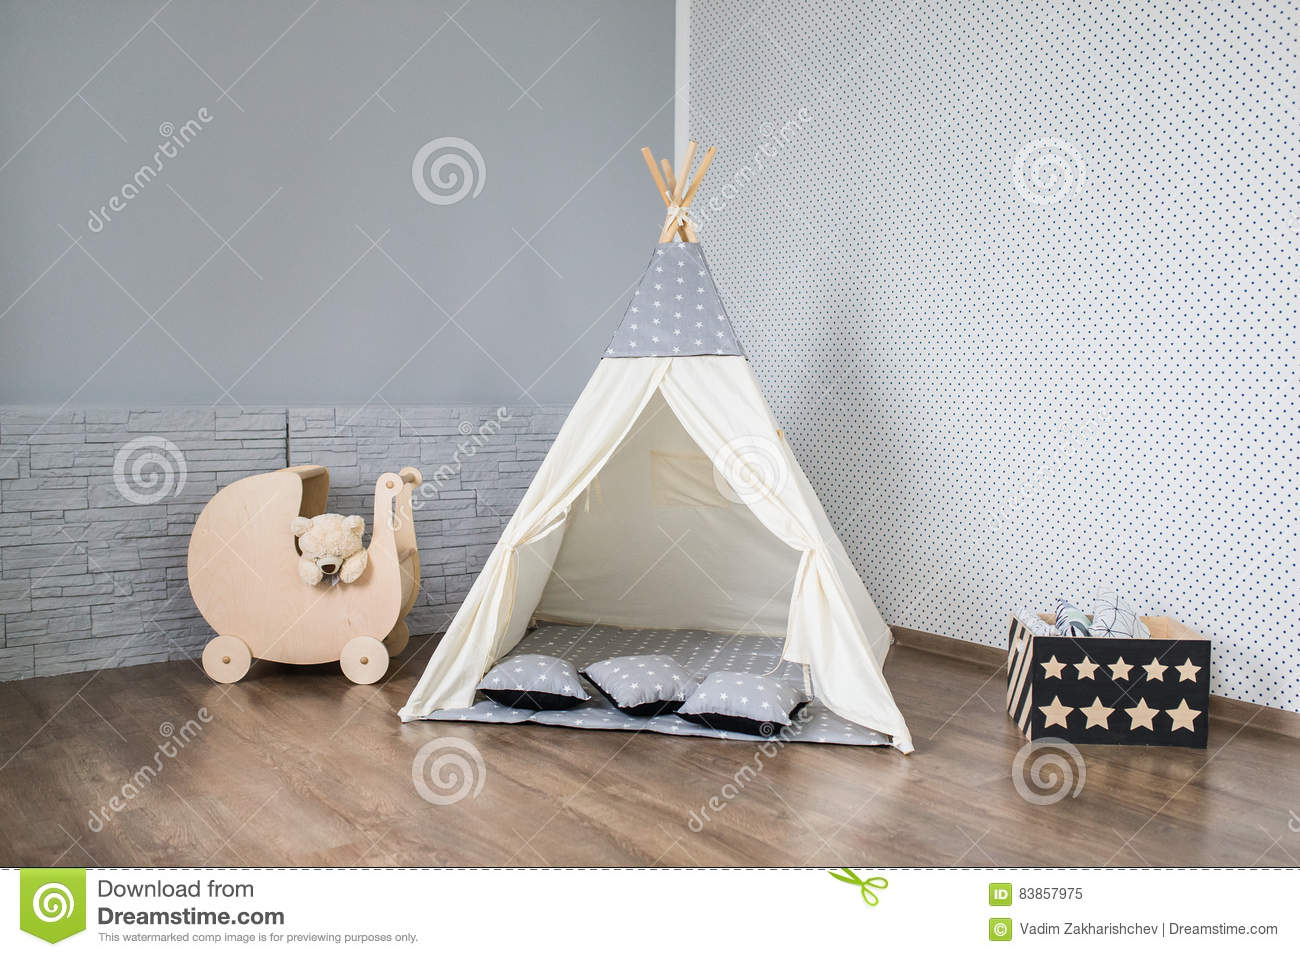 finest selection baf6c ccdfe Playroom with Teepee stock image. Image of furniture - 83857975